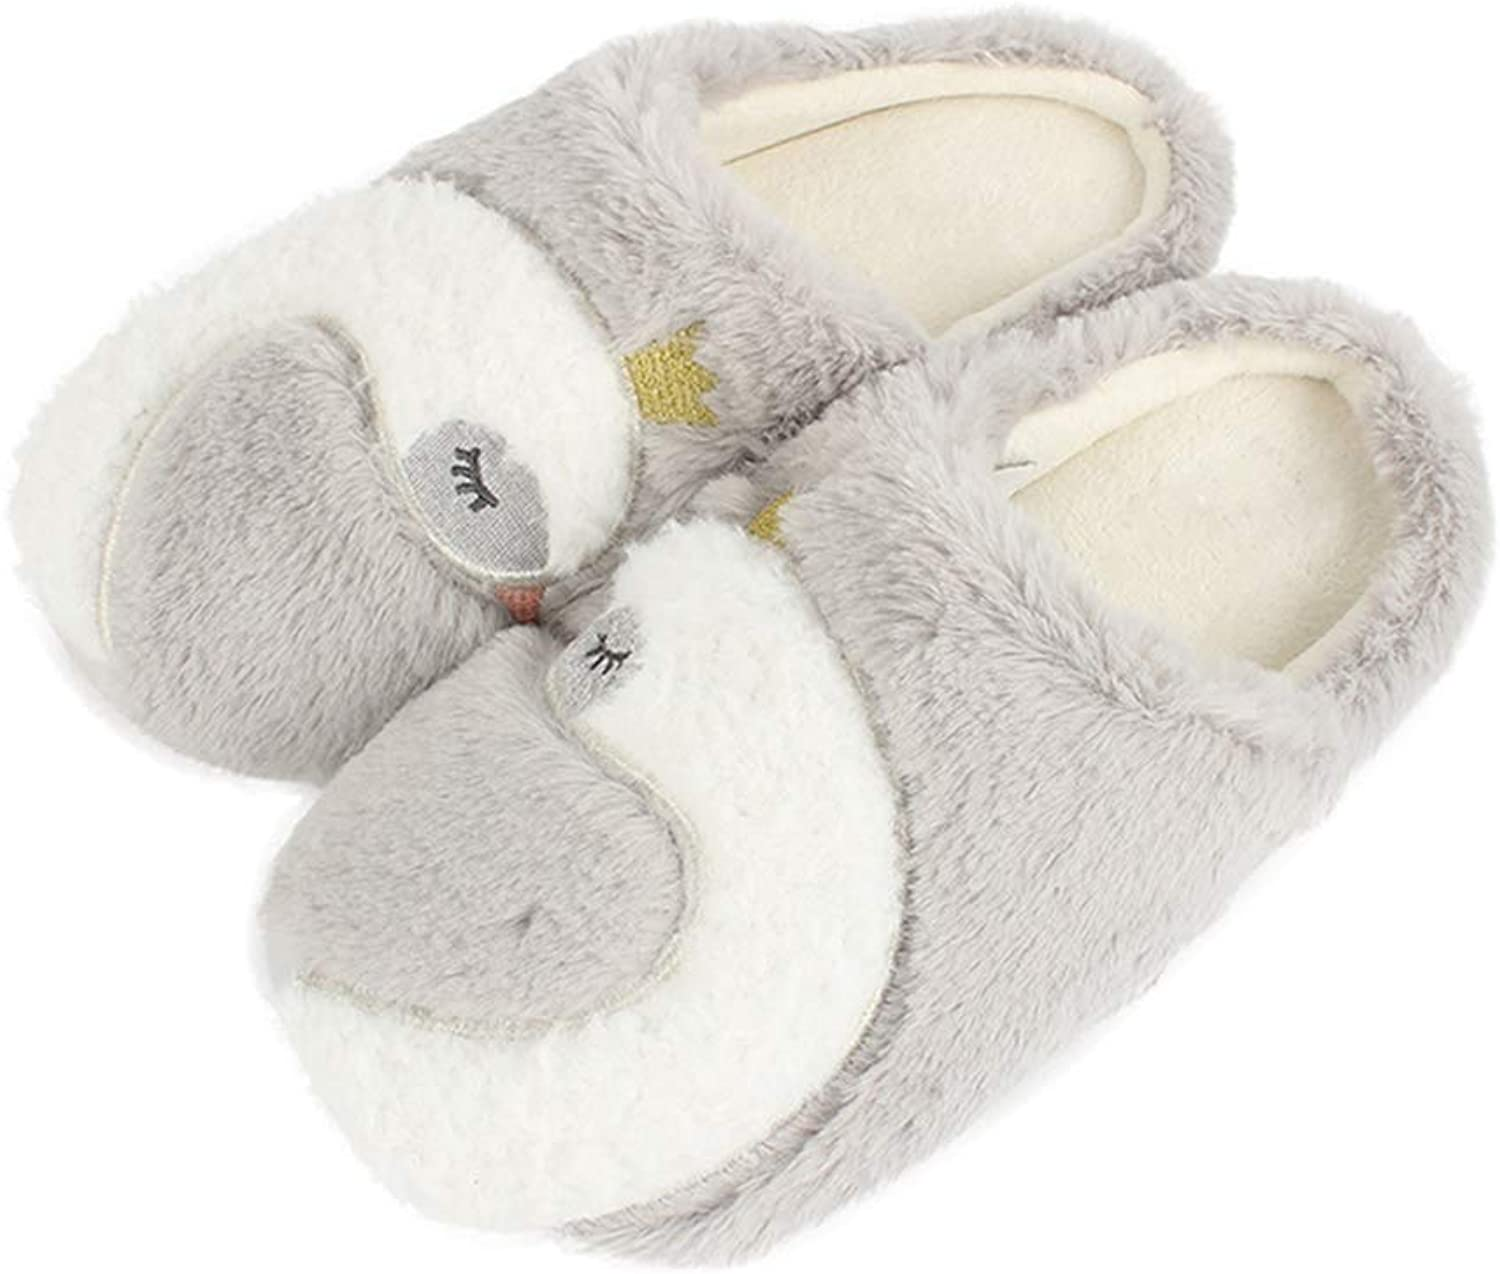 Hoxekle Womens Wool Slippers Fluffy Fur Slides Soft Warm Indoor Flip Flops Woman Causal Fuzzy Plush shoes